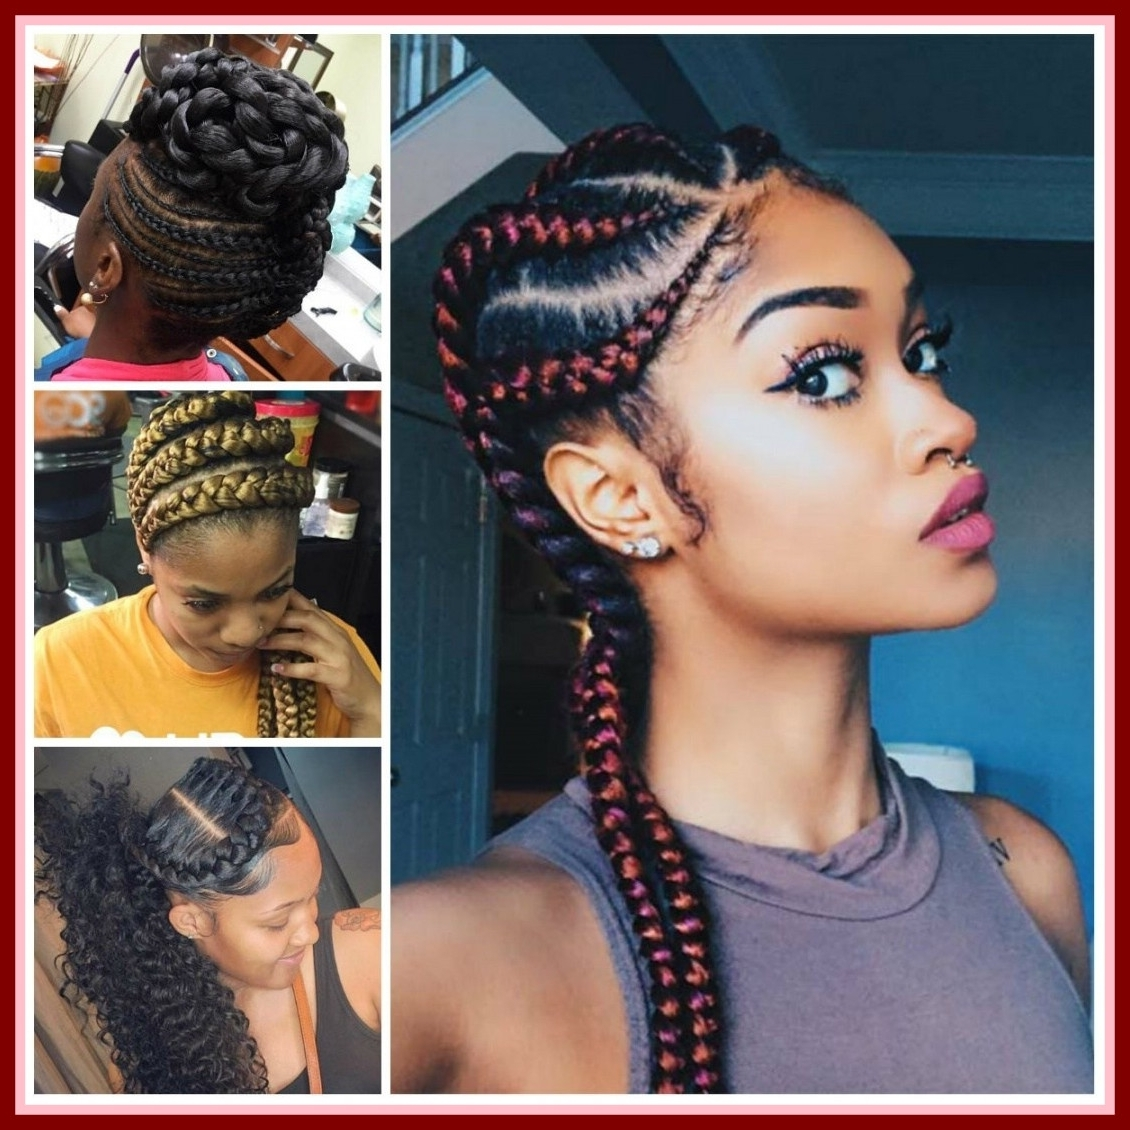 Astonishing African Braids Hairstyles The Big River Picture For Pertaining To Fashionable African Braided Hairstyles (View 4 of 15)